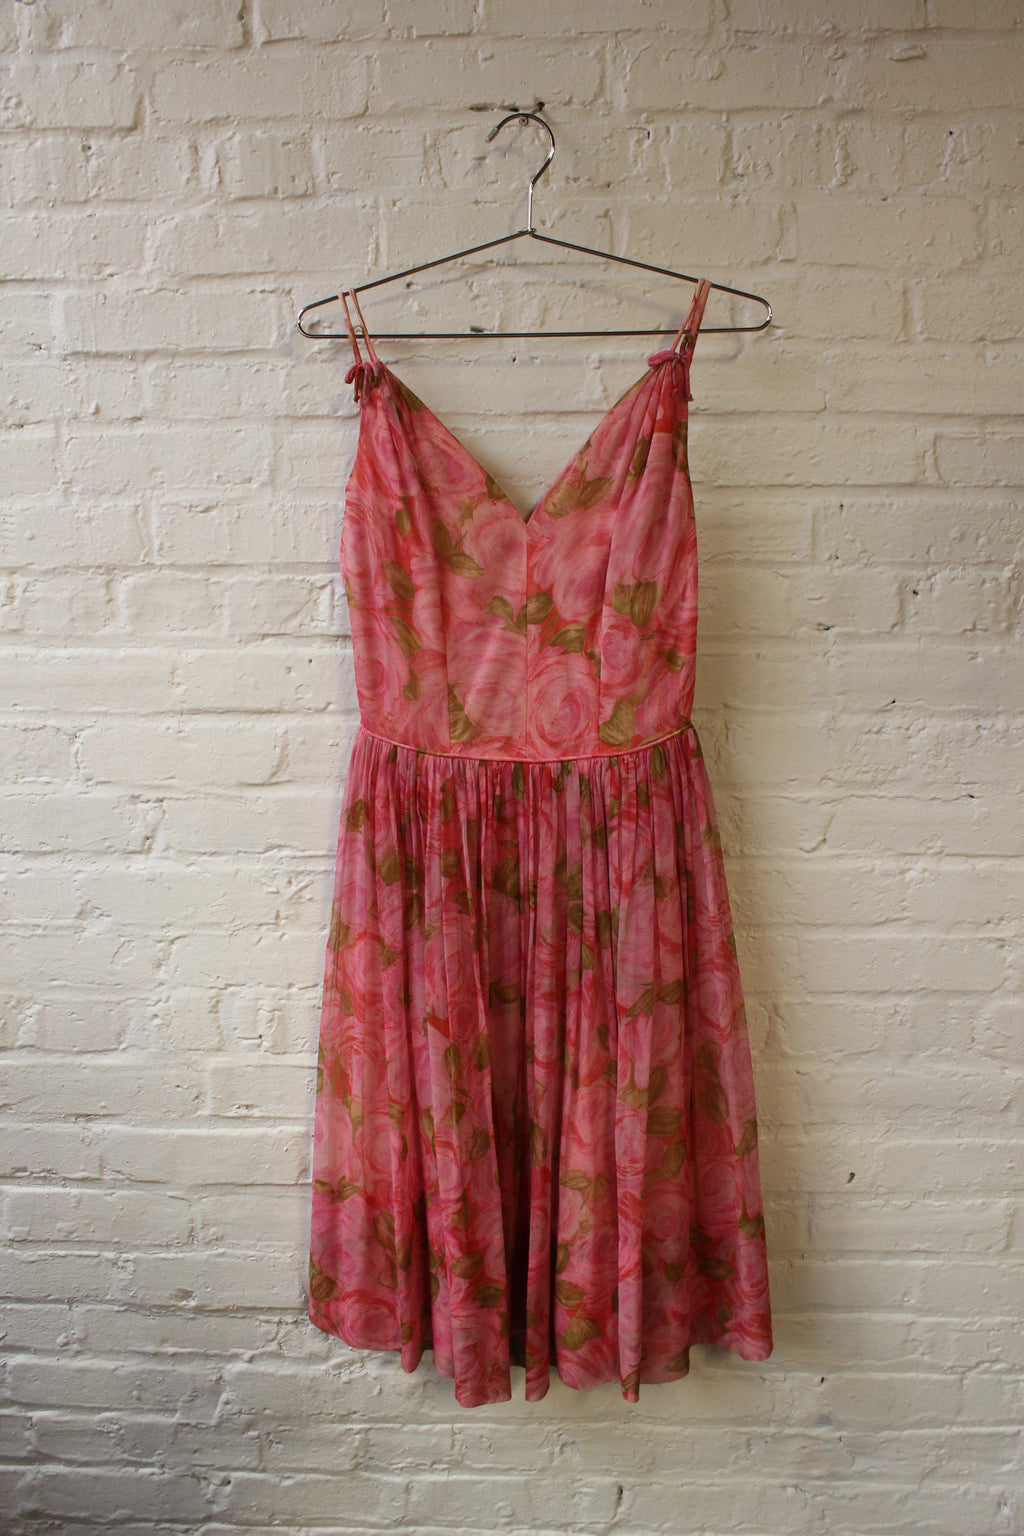 60s Rose Patterned Dress